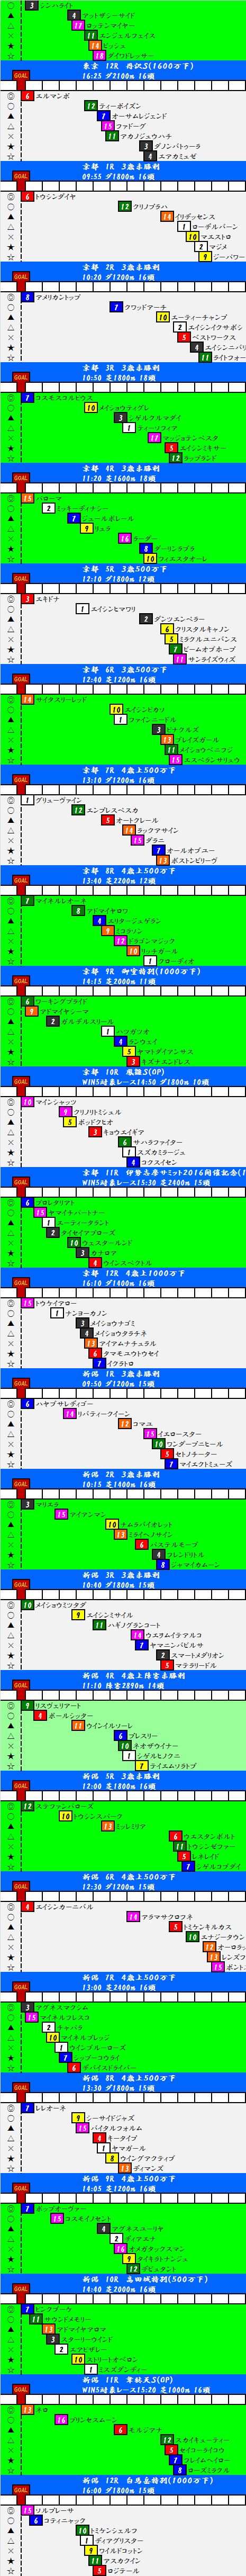 2016052202.png